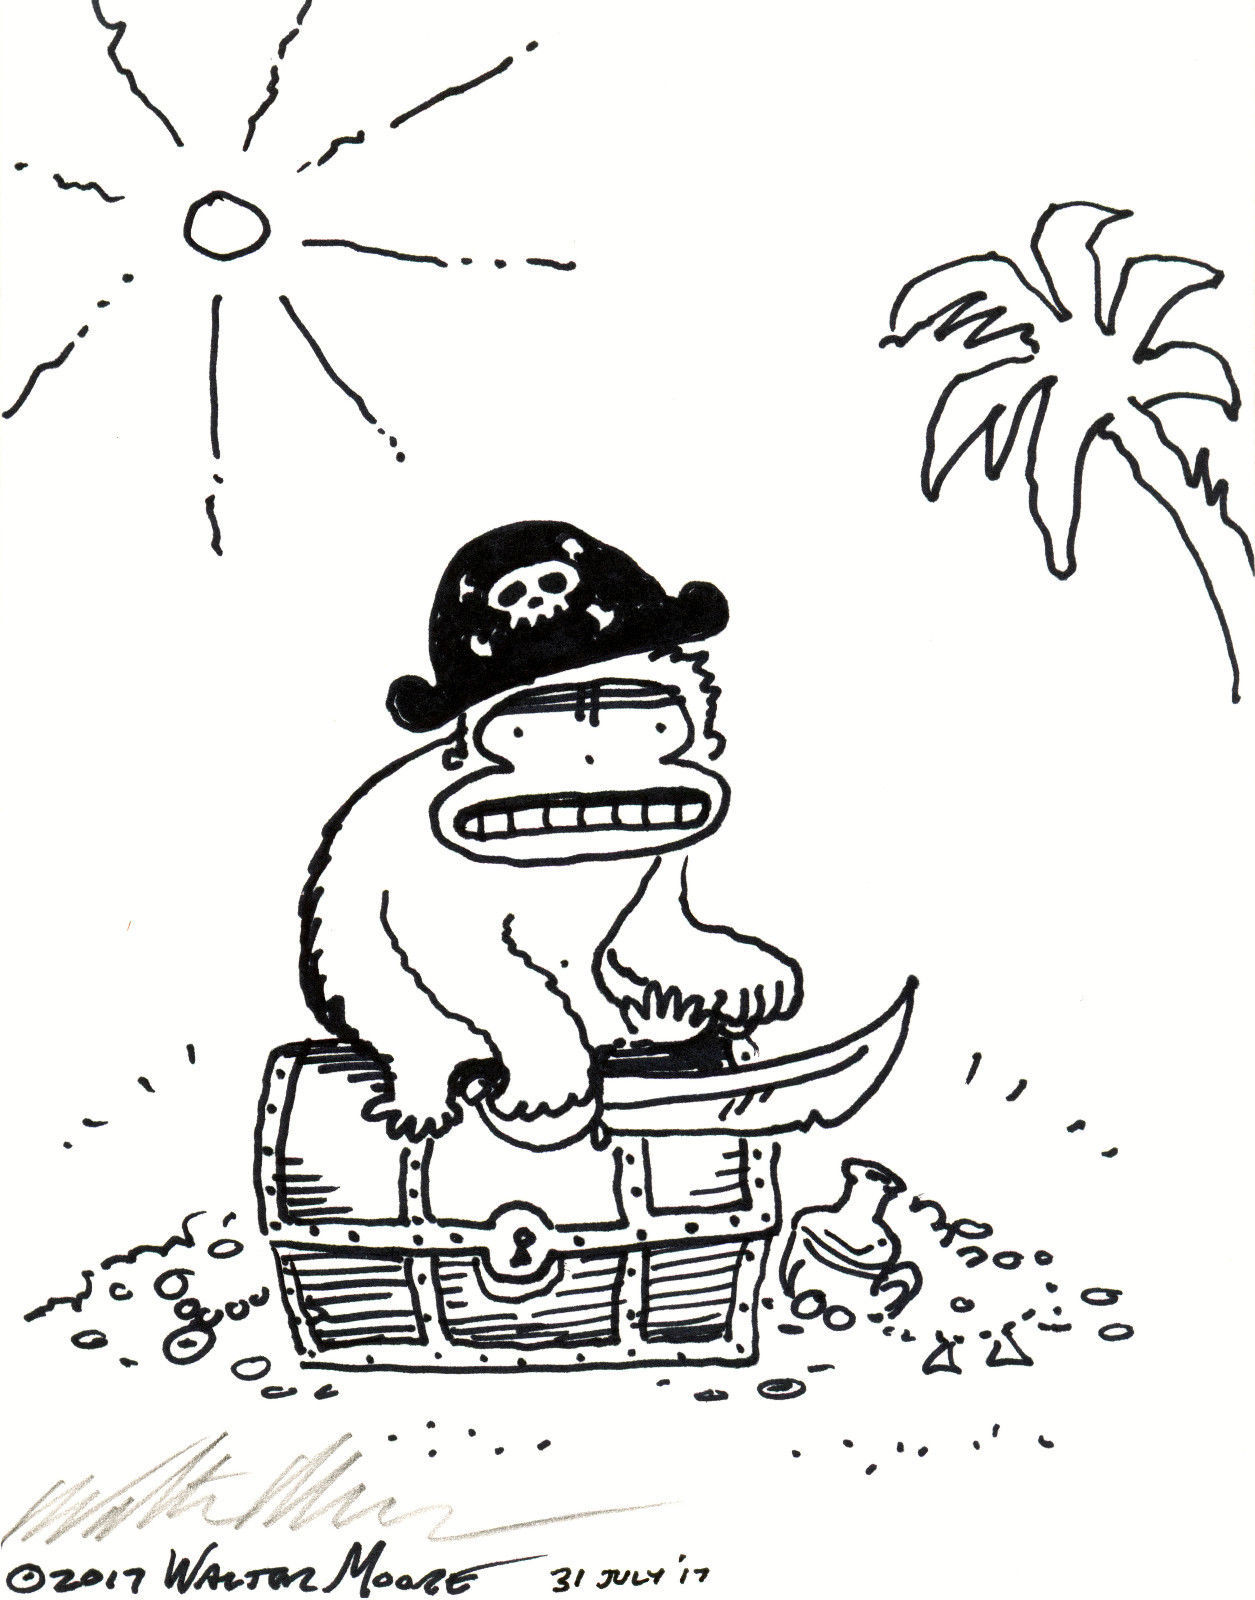 Primary image for Pirate Ape Guards Treasure. Original Signed Cartoon by Walter Moore